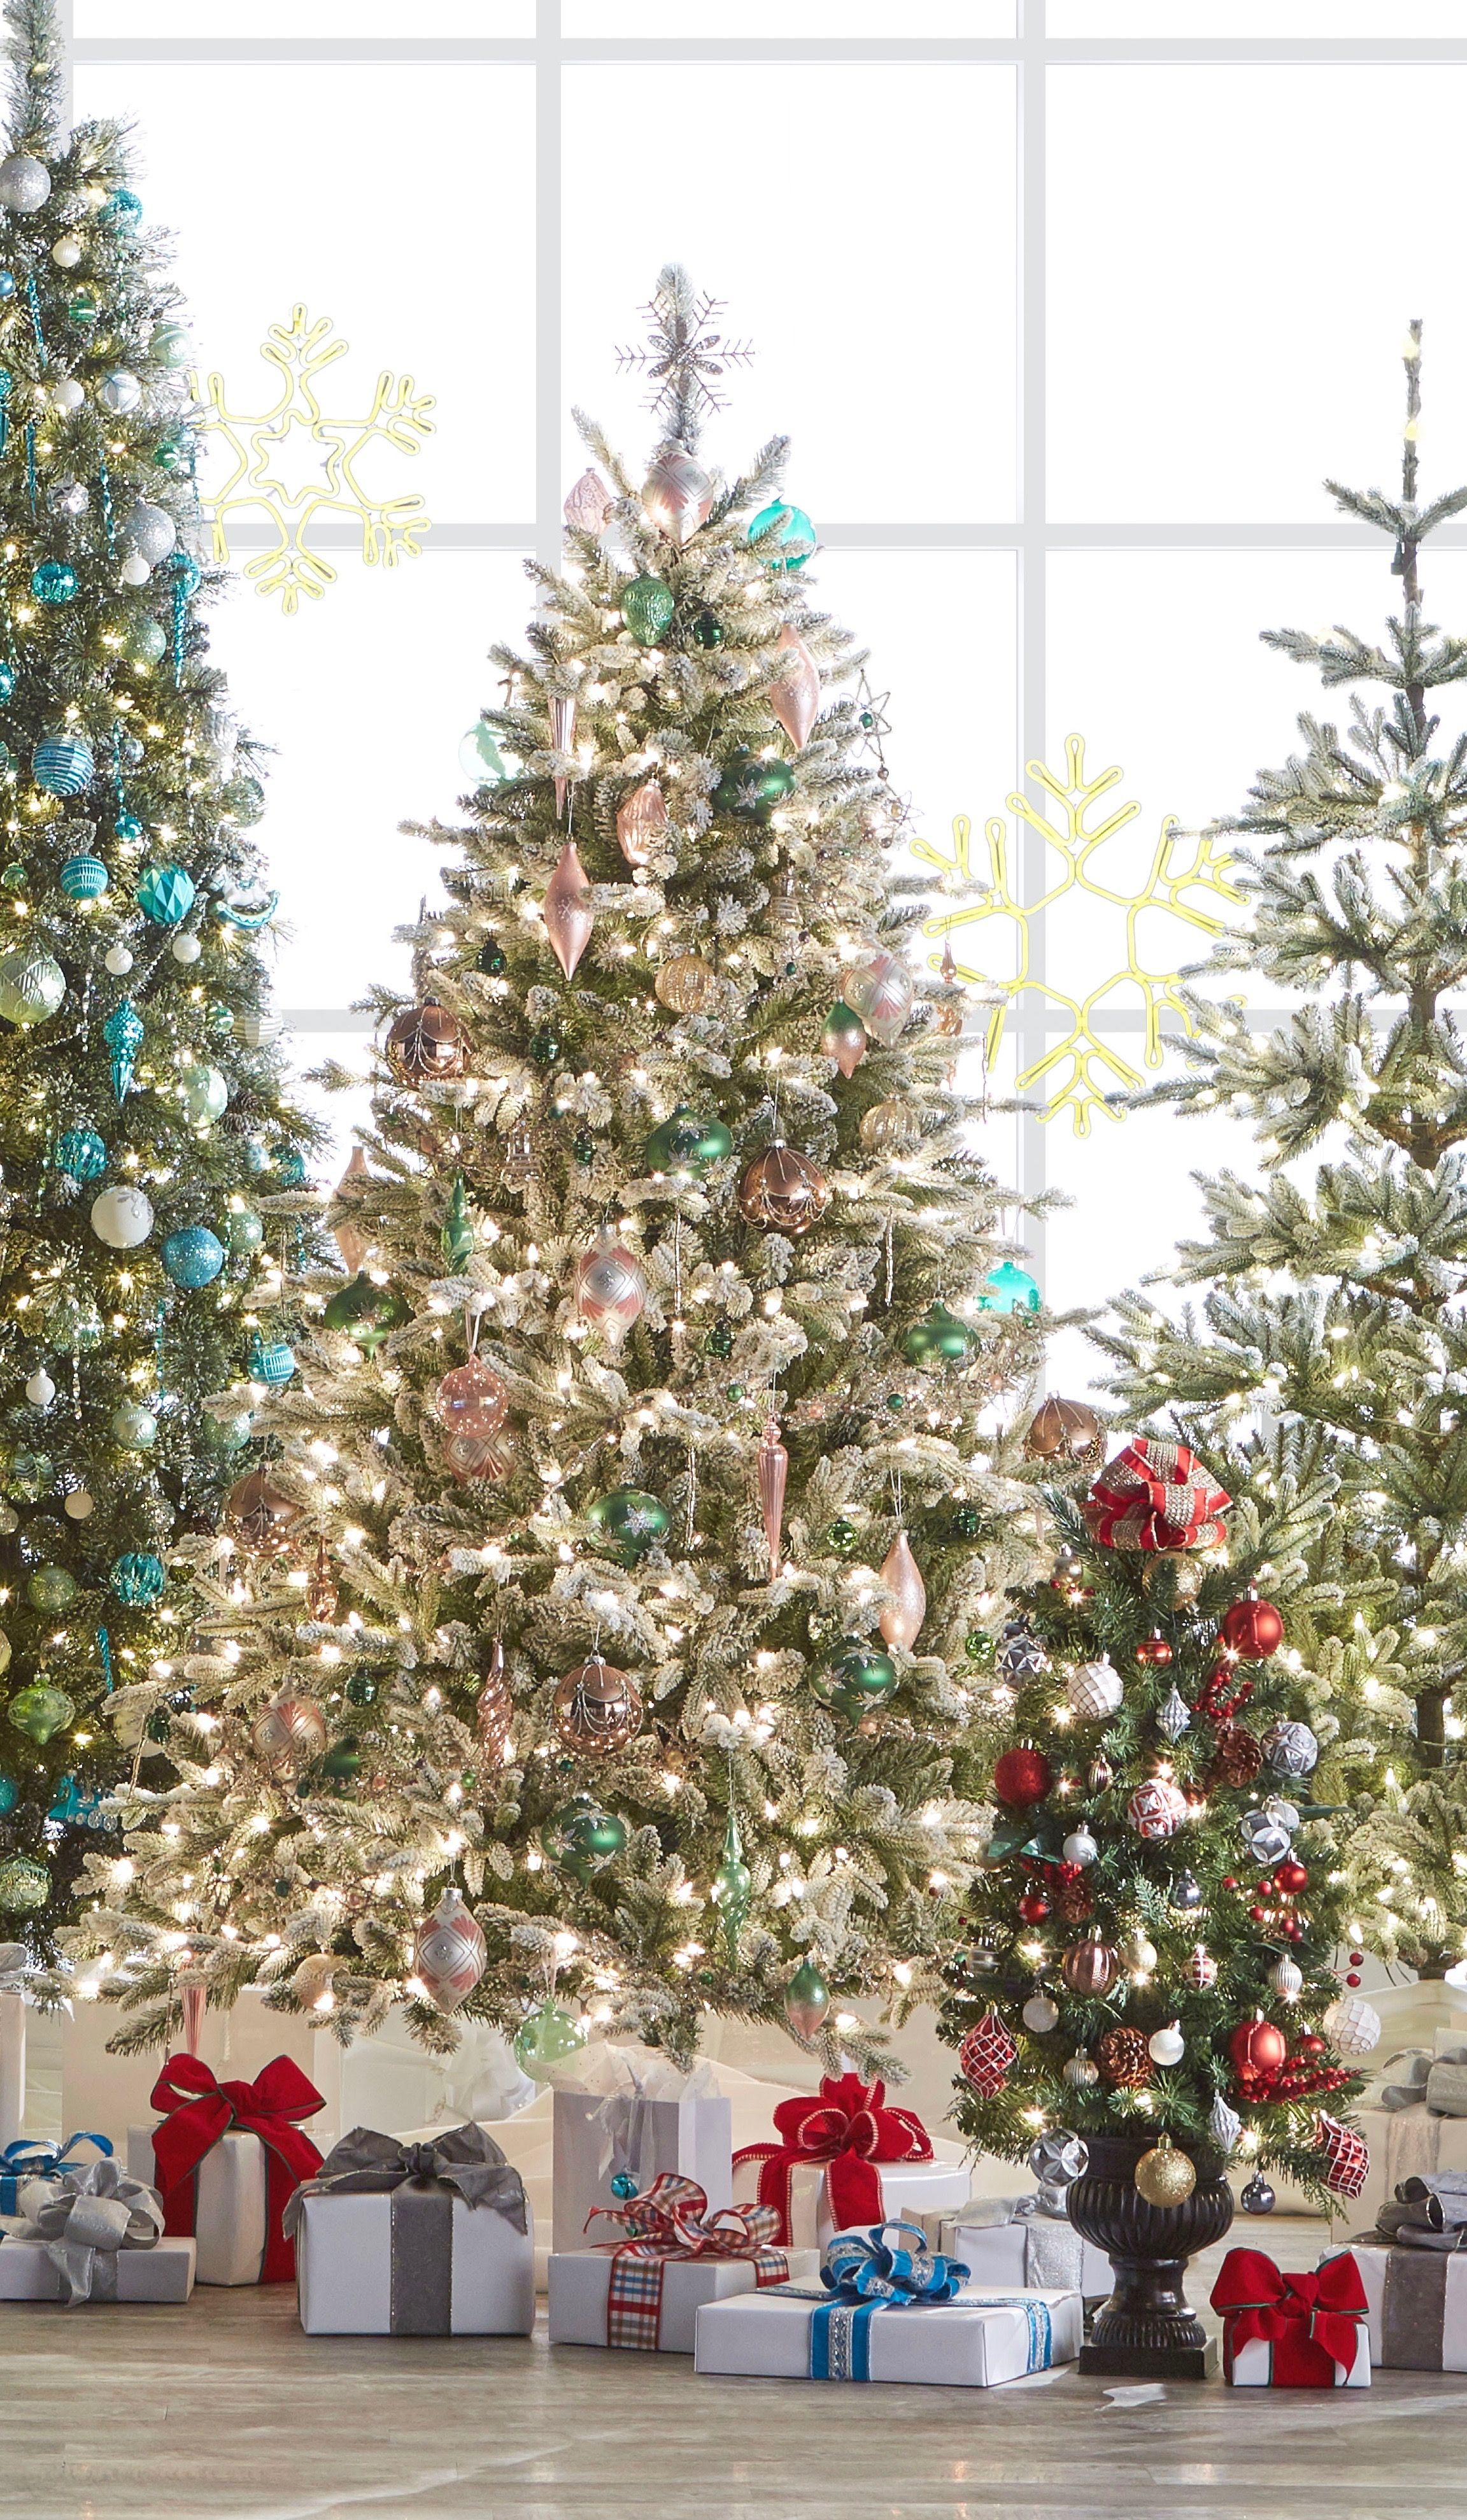 How To Decorate A Tree Christmas Tree Home Depot Holiday Christmas Tree Christmas Tree Design